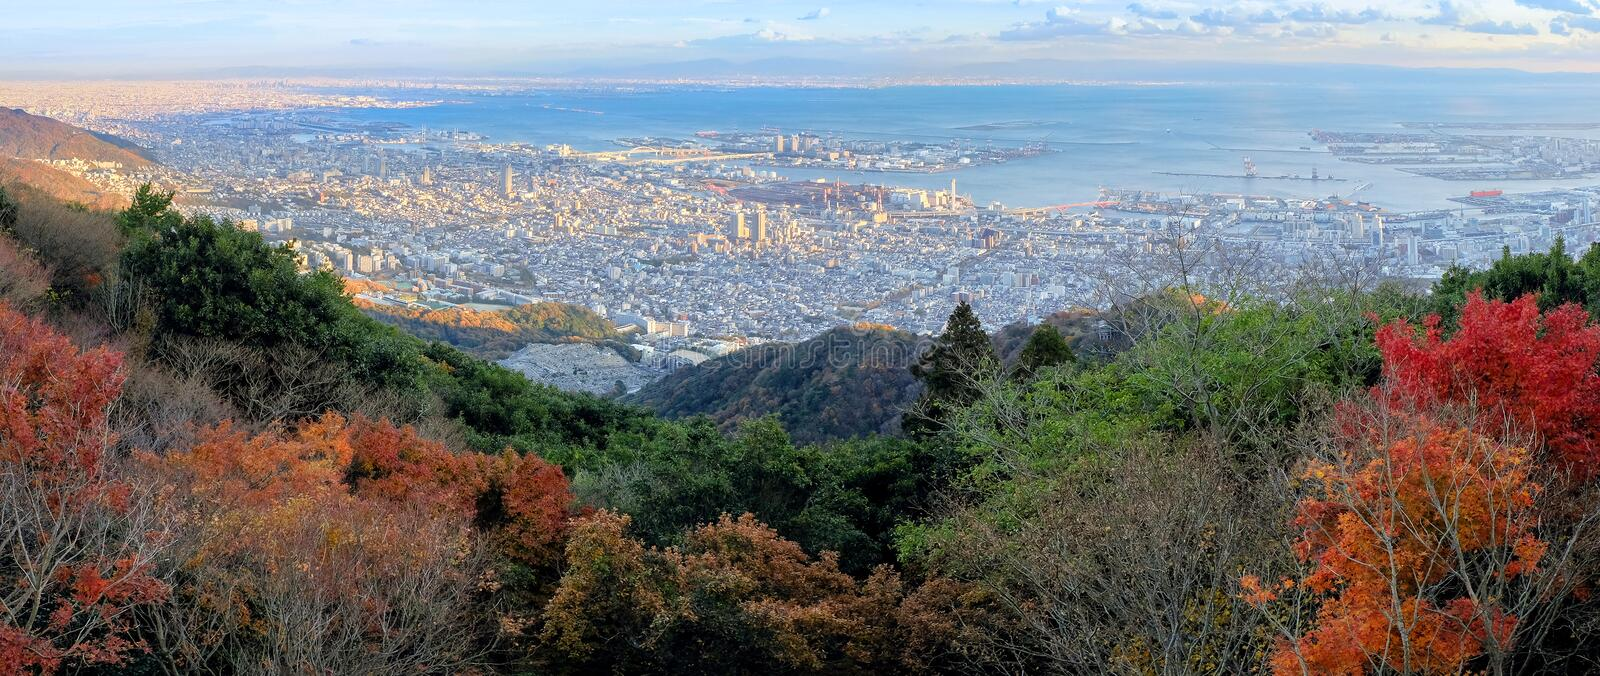 Aerial view of Kobe City from Mount Maya in Autumn season, Japan.  stock photo